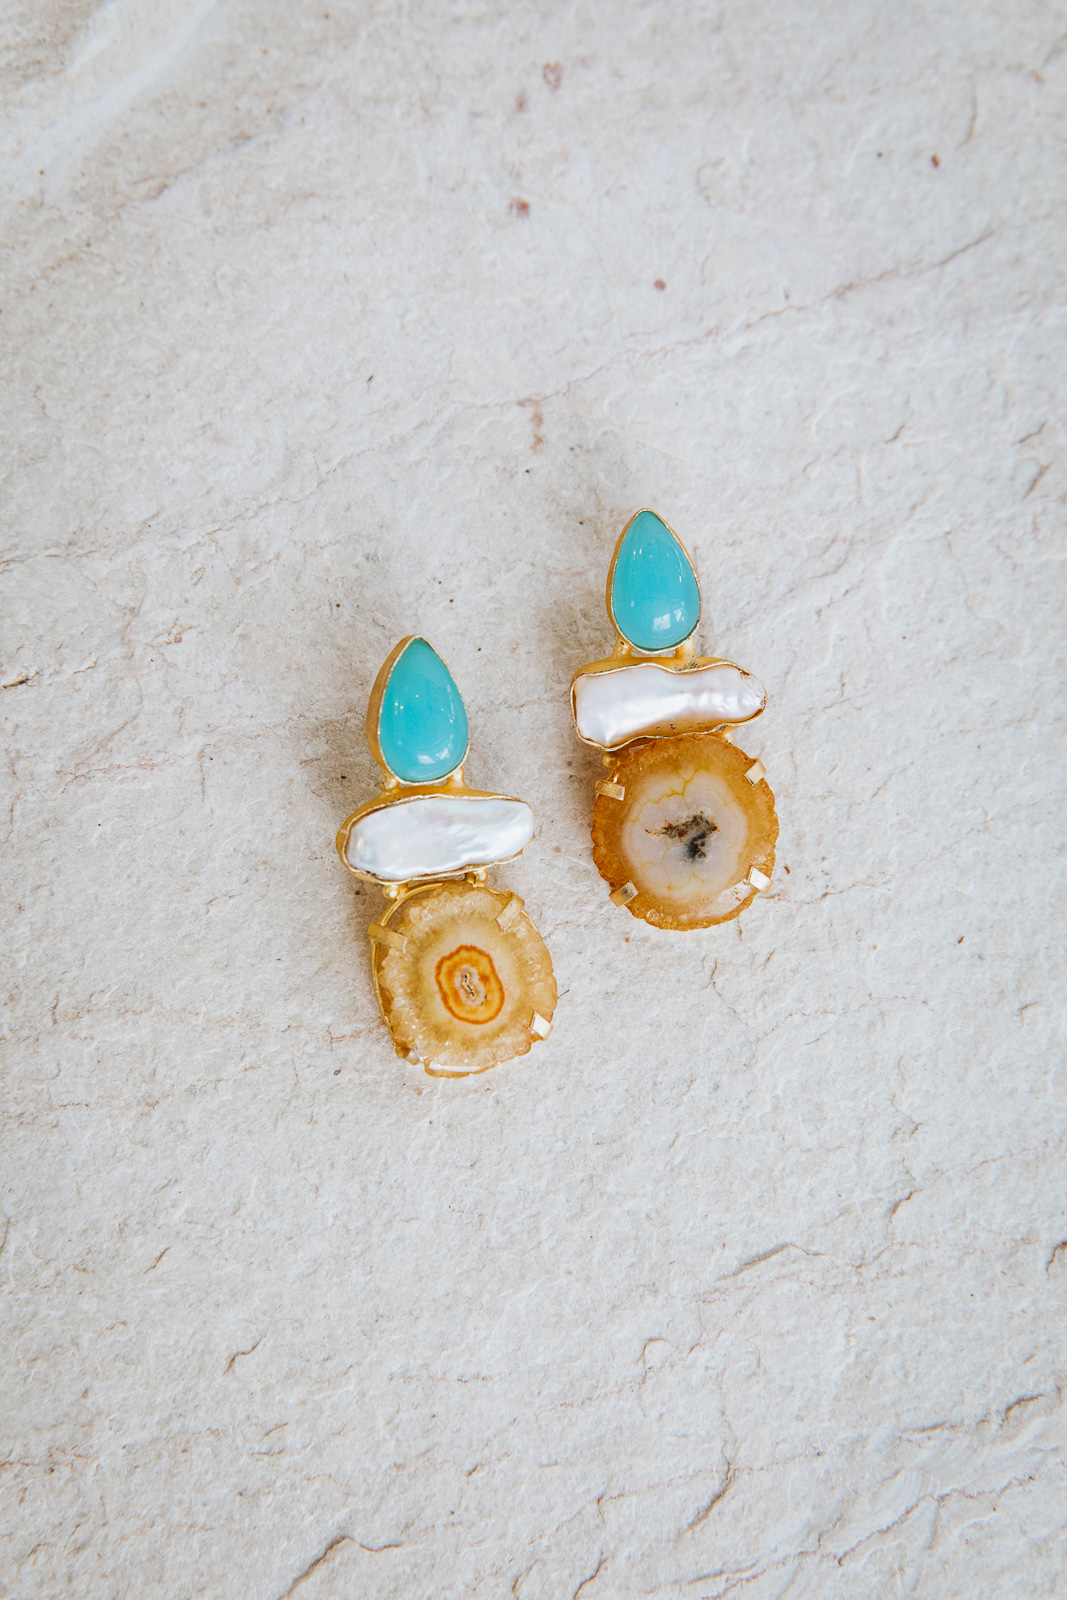 BABY BLUE VINCENZA EARRINGS